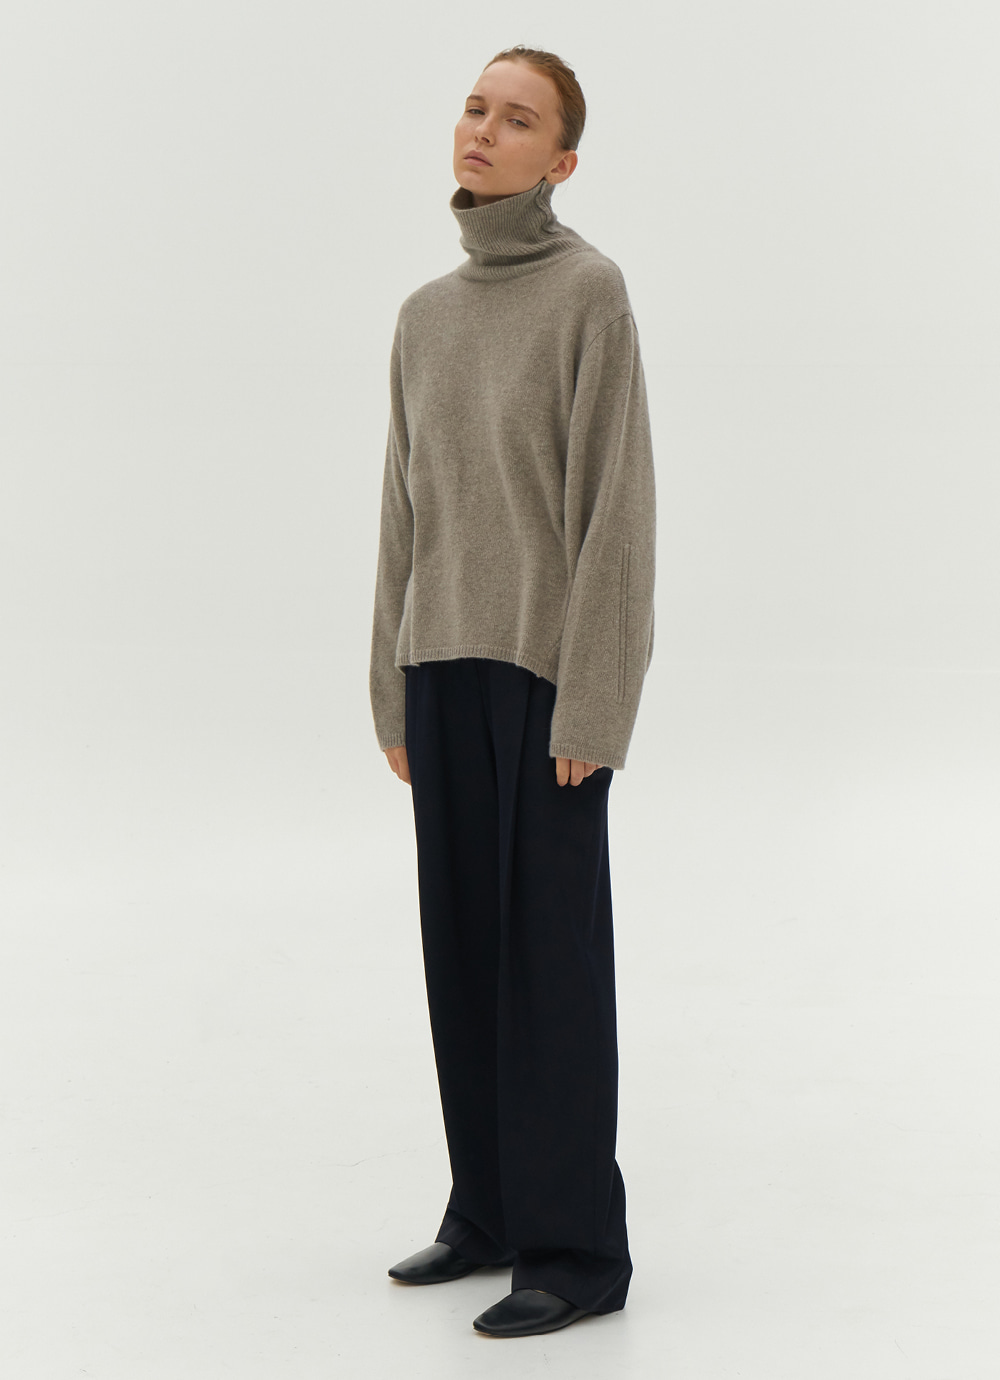 Tasmania Wool  Turtle Neck [Warm Grey]